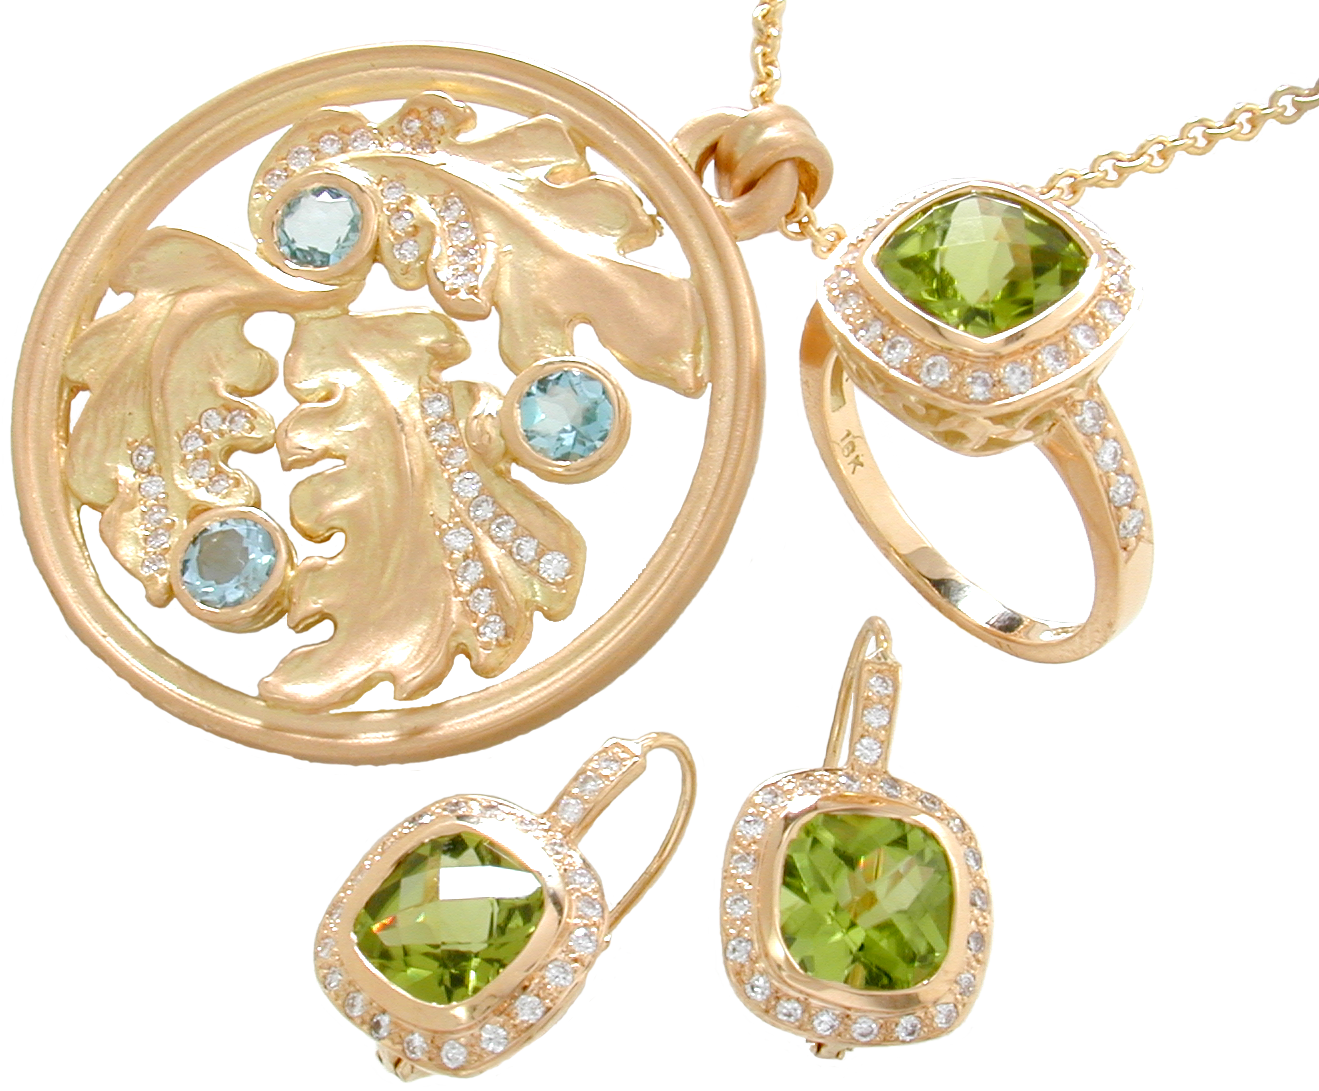 Aquamarines, peridots and diamonds set in 18k gold.